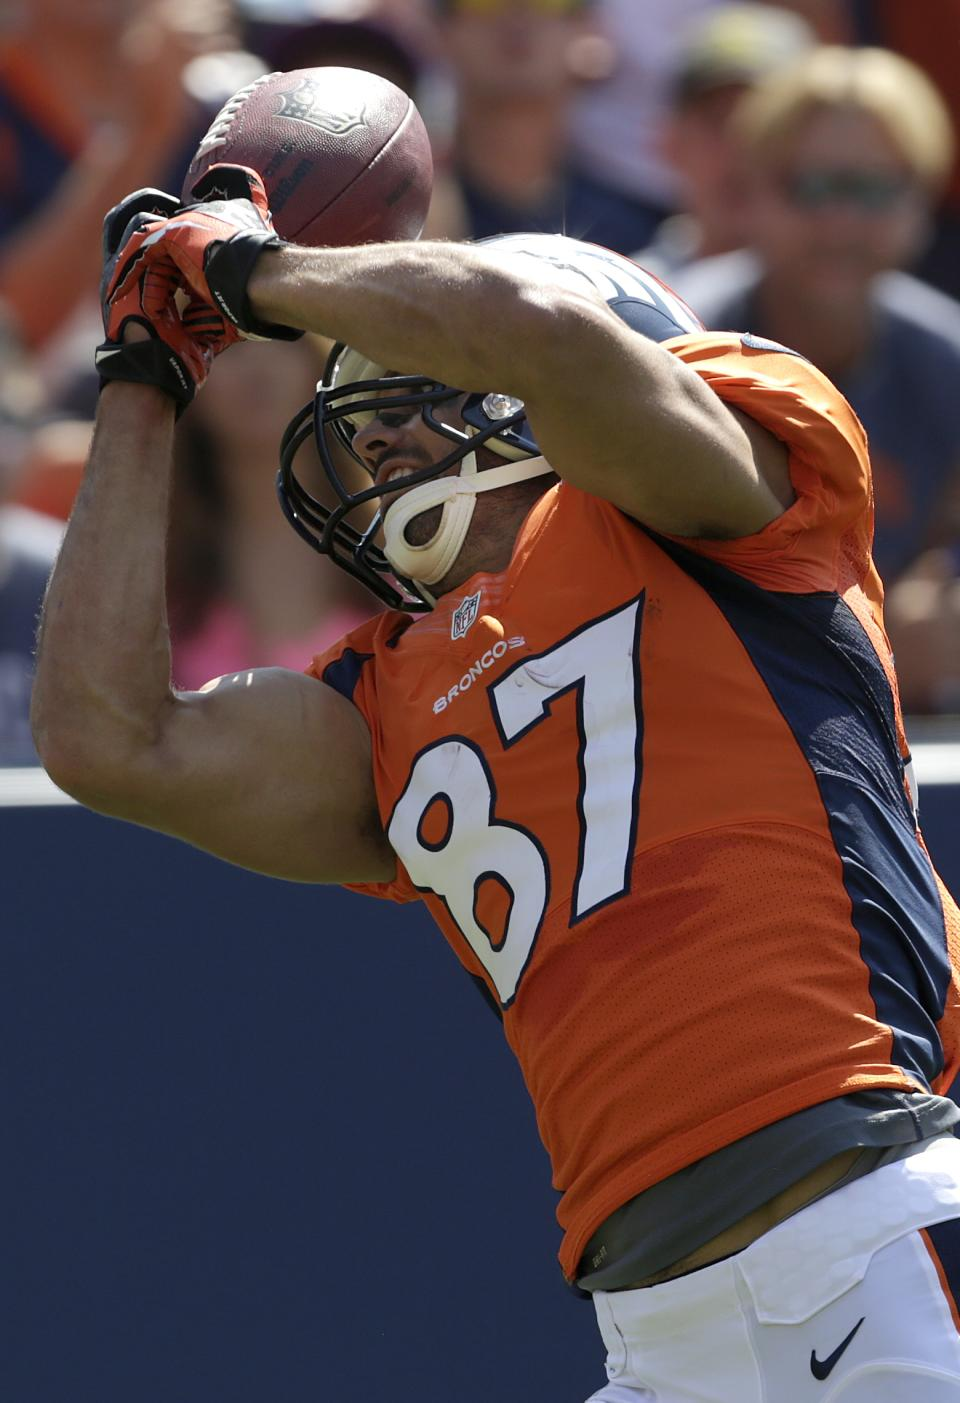 Denver Broncos wide receiver Eric Decker (87) catches a touchdown pass from quarterback Peyton Manning during the first quarter of an NFL preseason football game against the San Francisco 49ers in Denver, Sunday, Aug. 26, 2012. (AP Photo/Joe Mahoney)